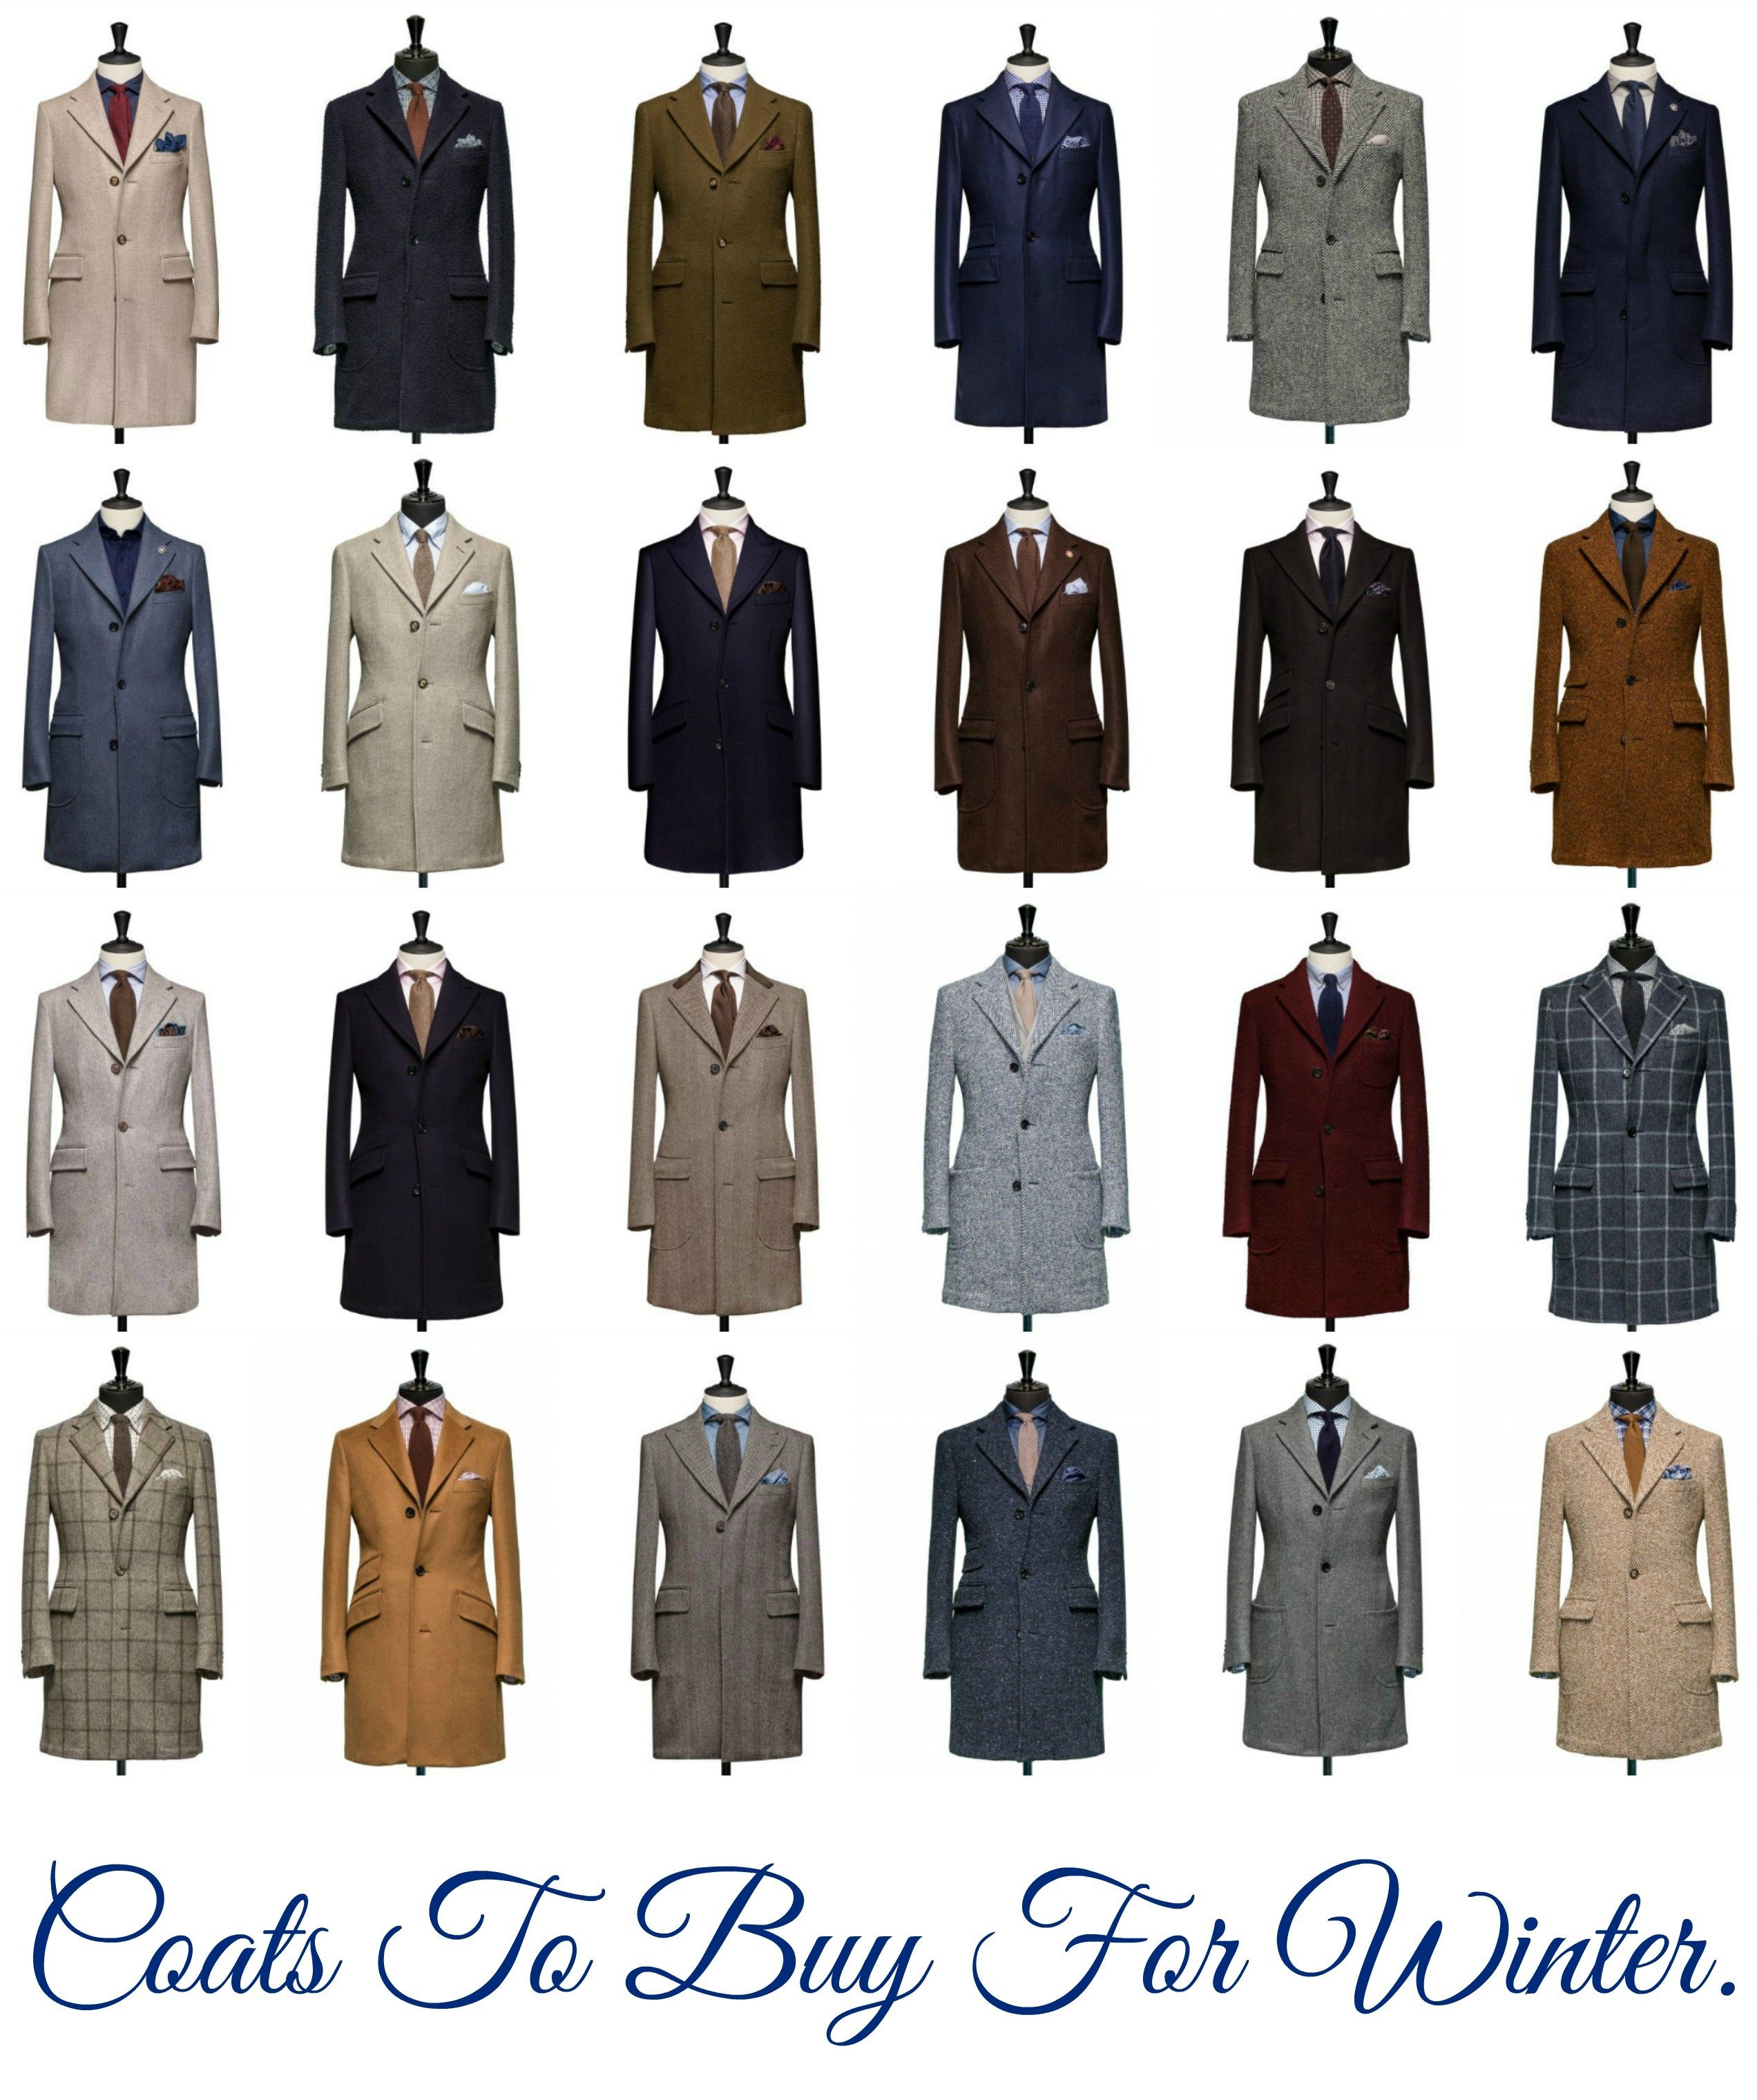 Coats To Buy For Winter